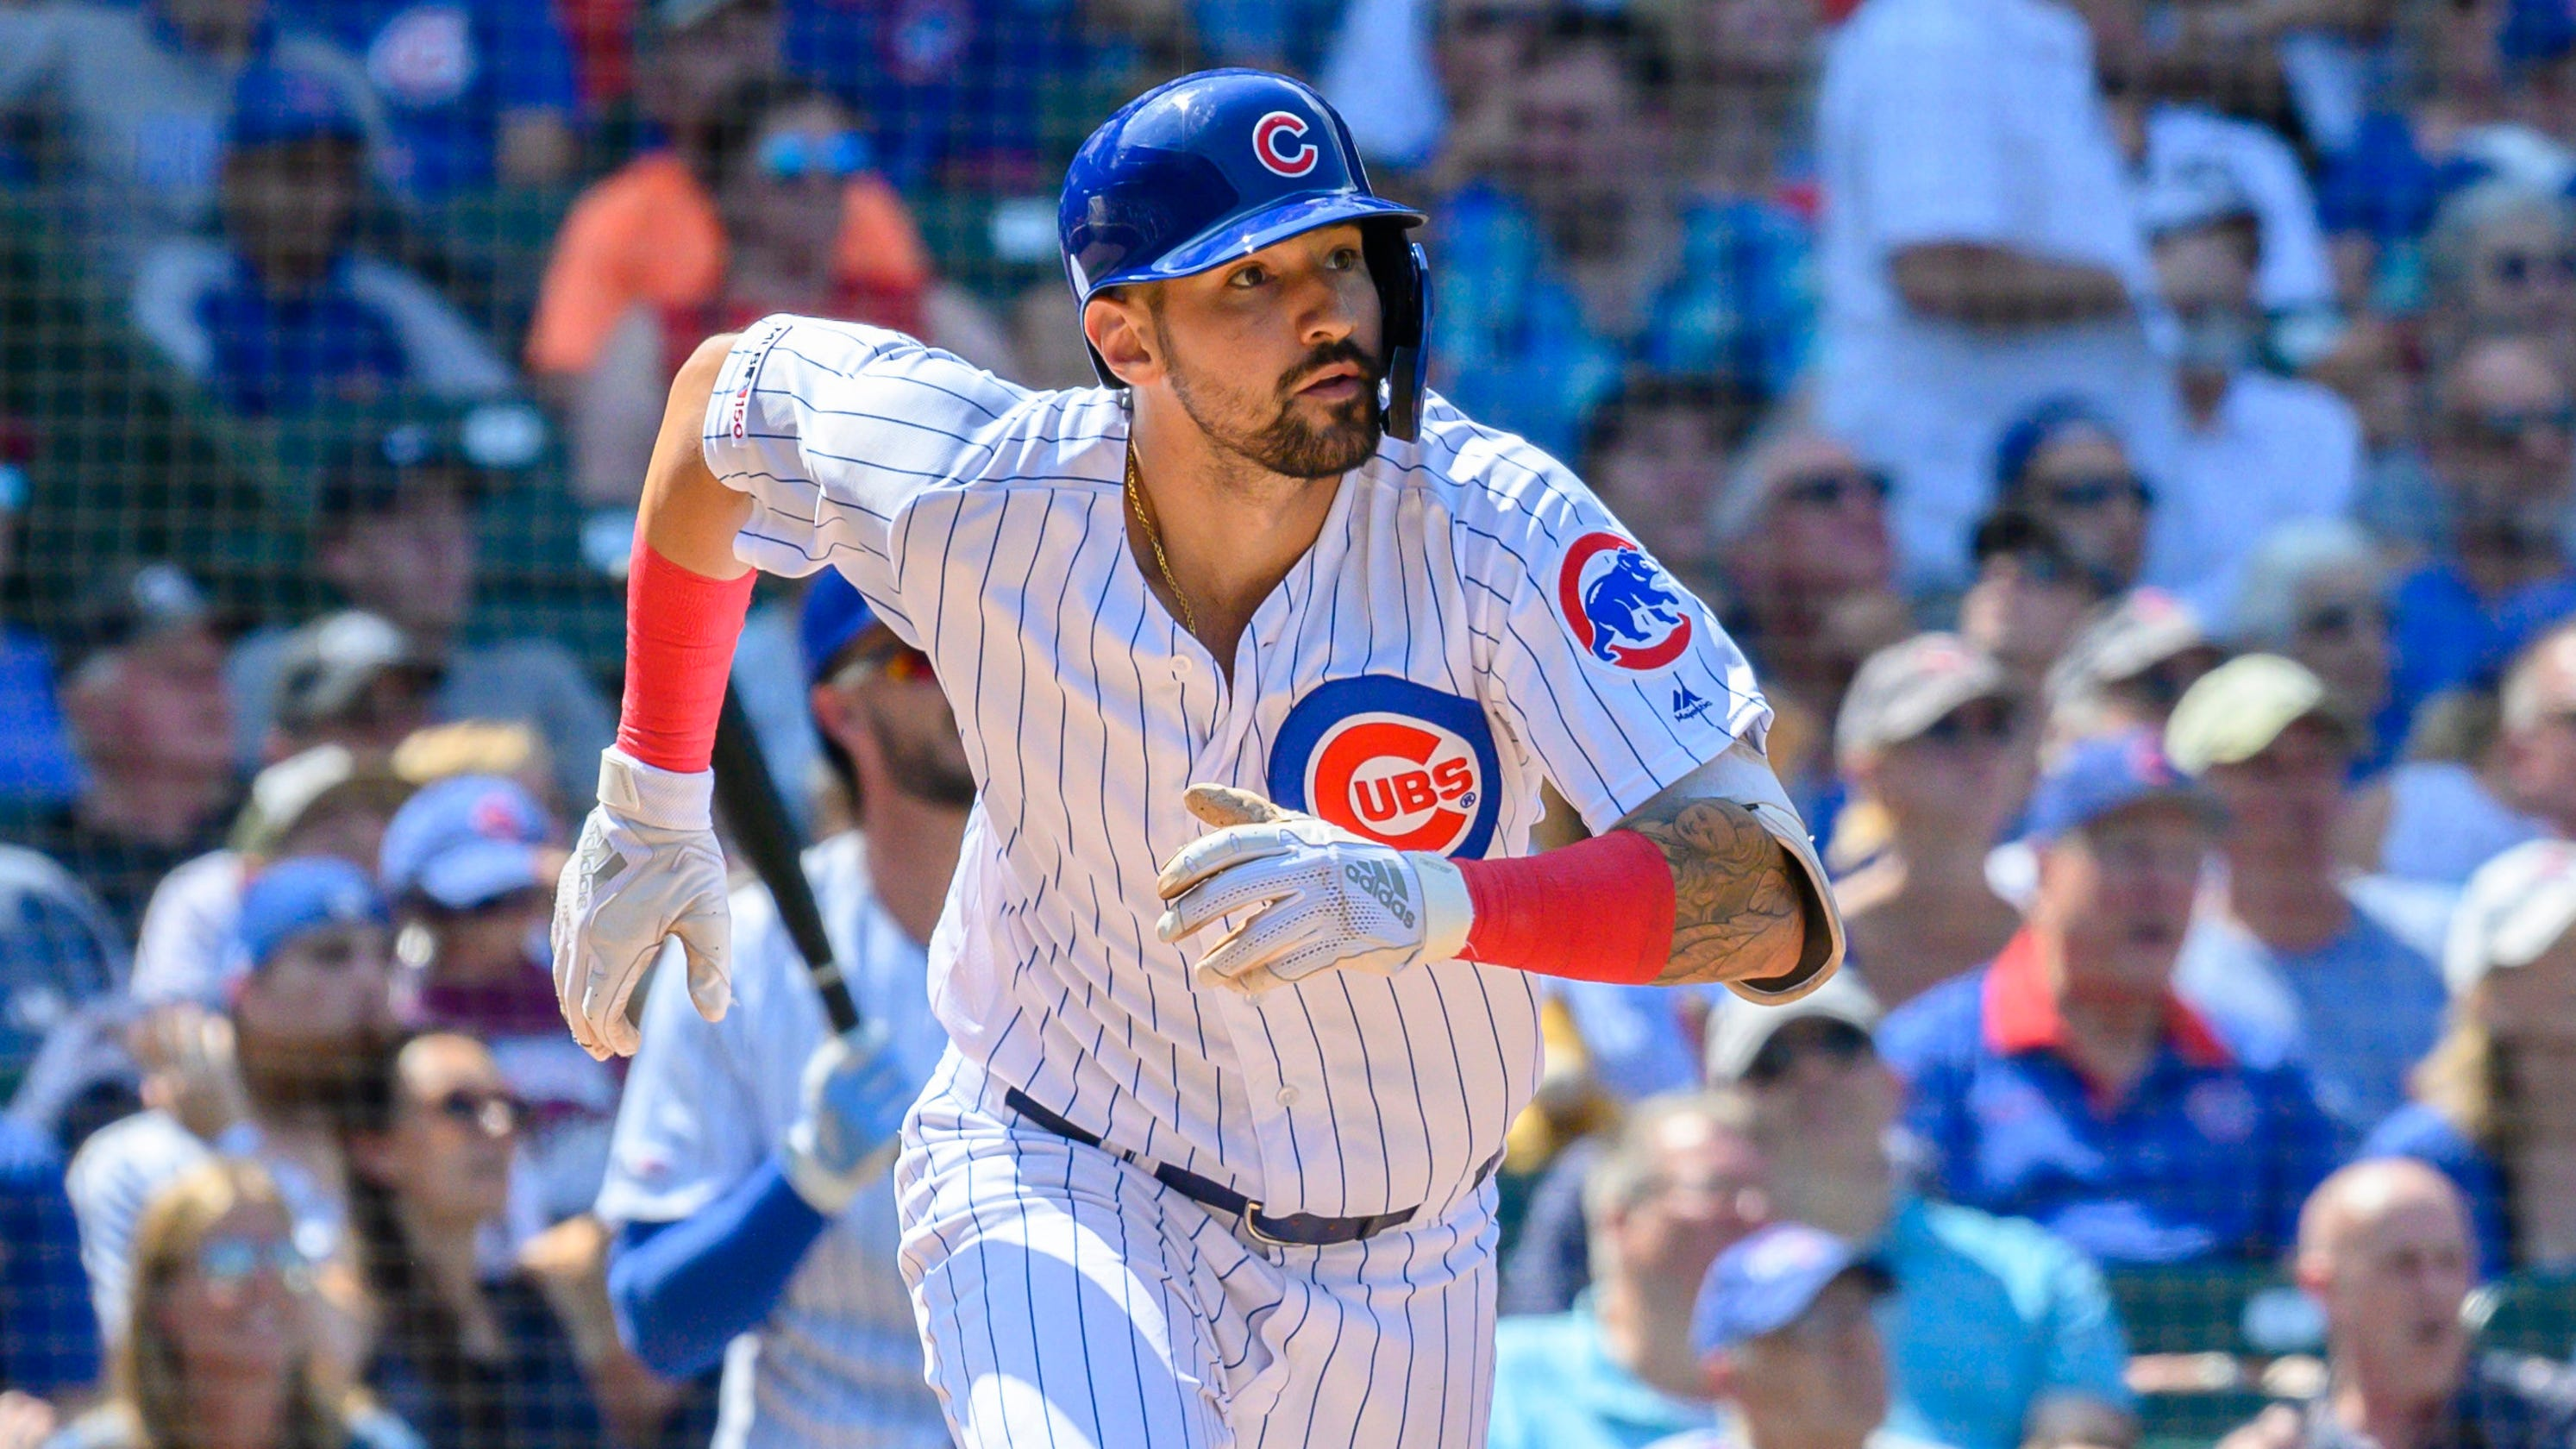 Nick Castellanos gets last laugh as he exposes the flaws of analytics in Cubs' deadline coup